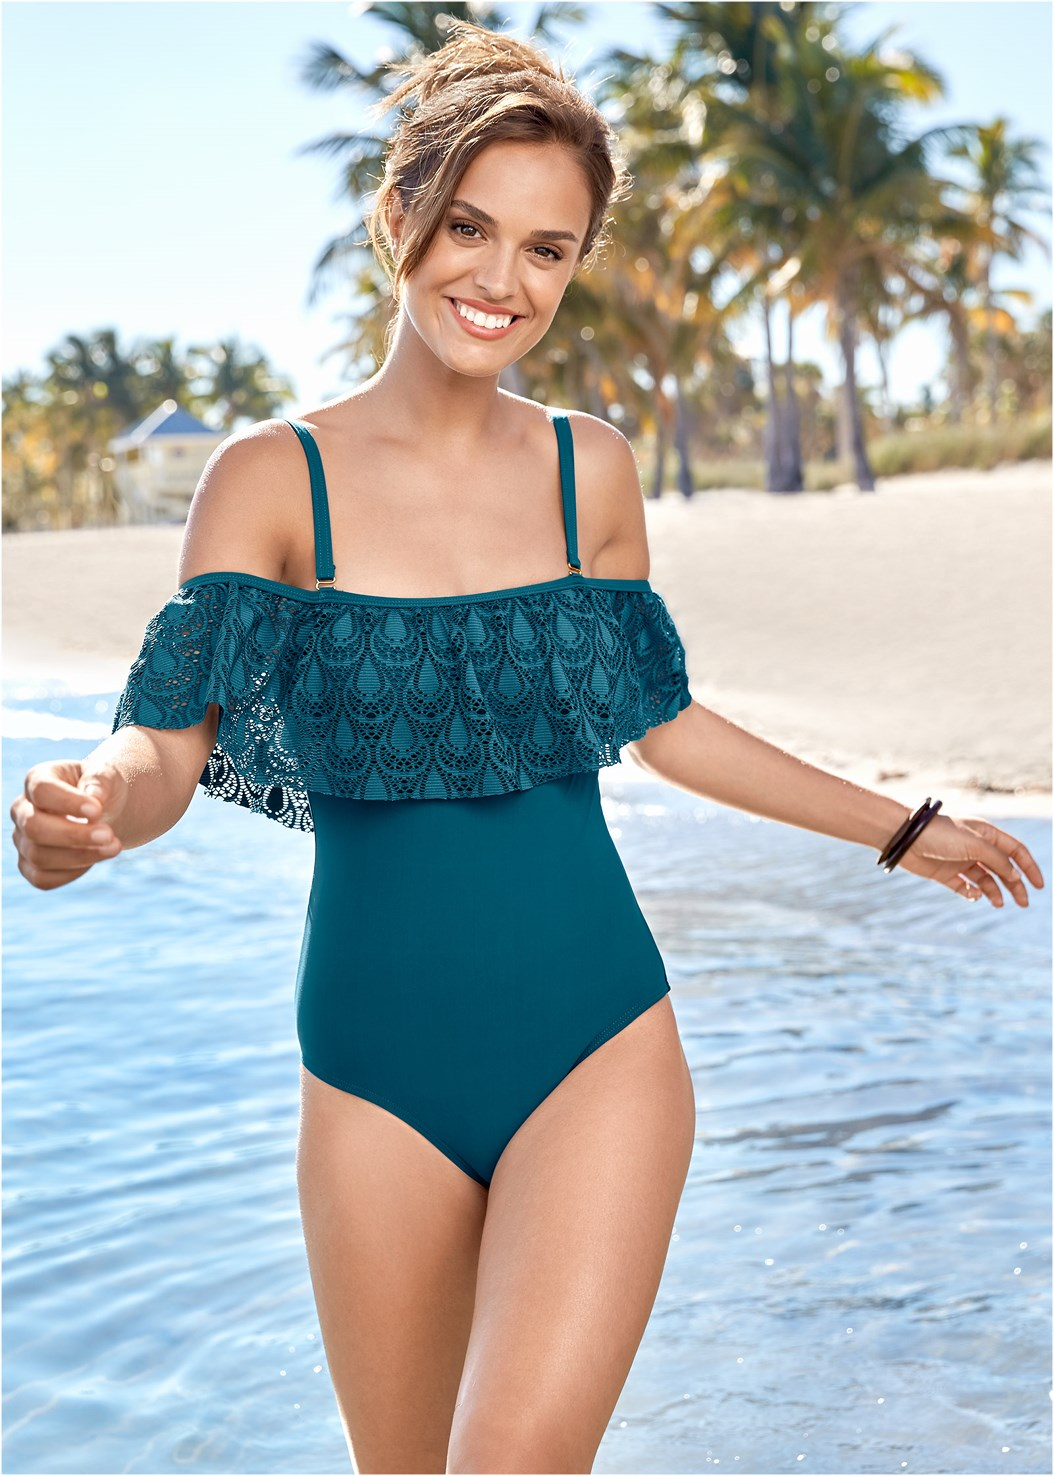 Drip Drop Crochet One-Piece,Tie Waist Beach Pant